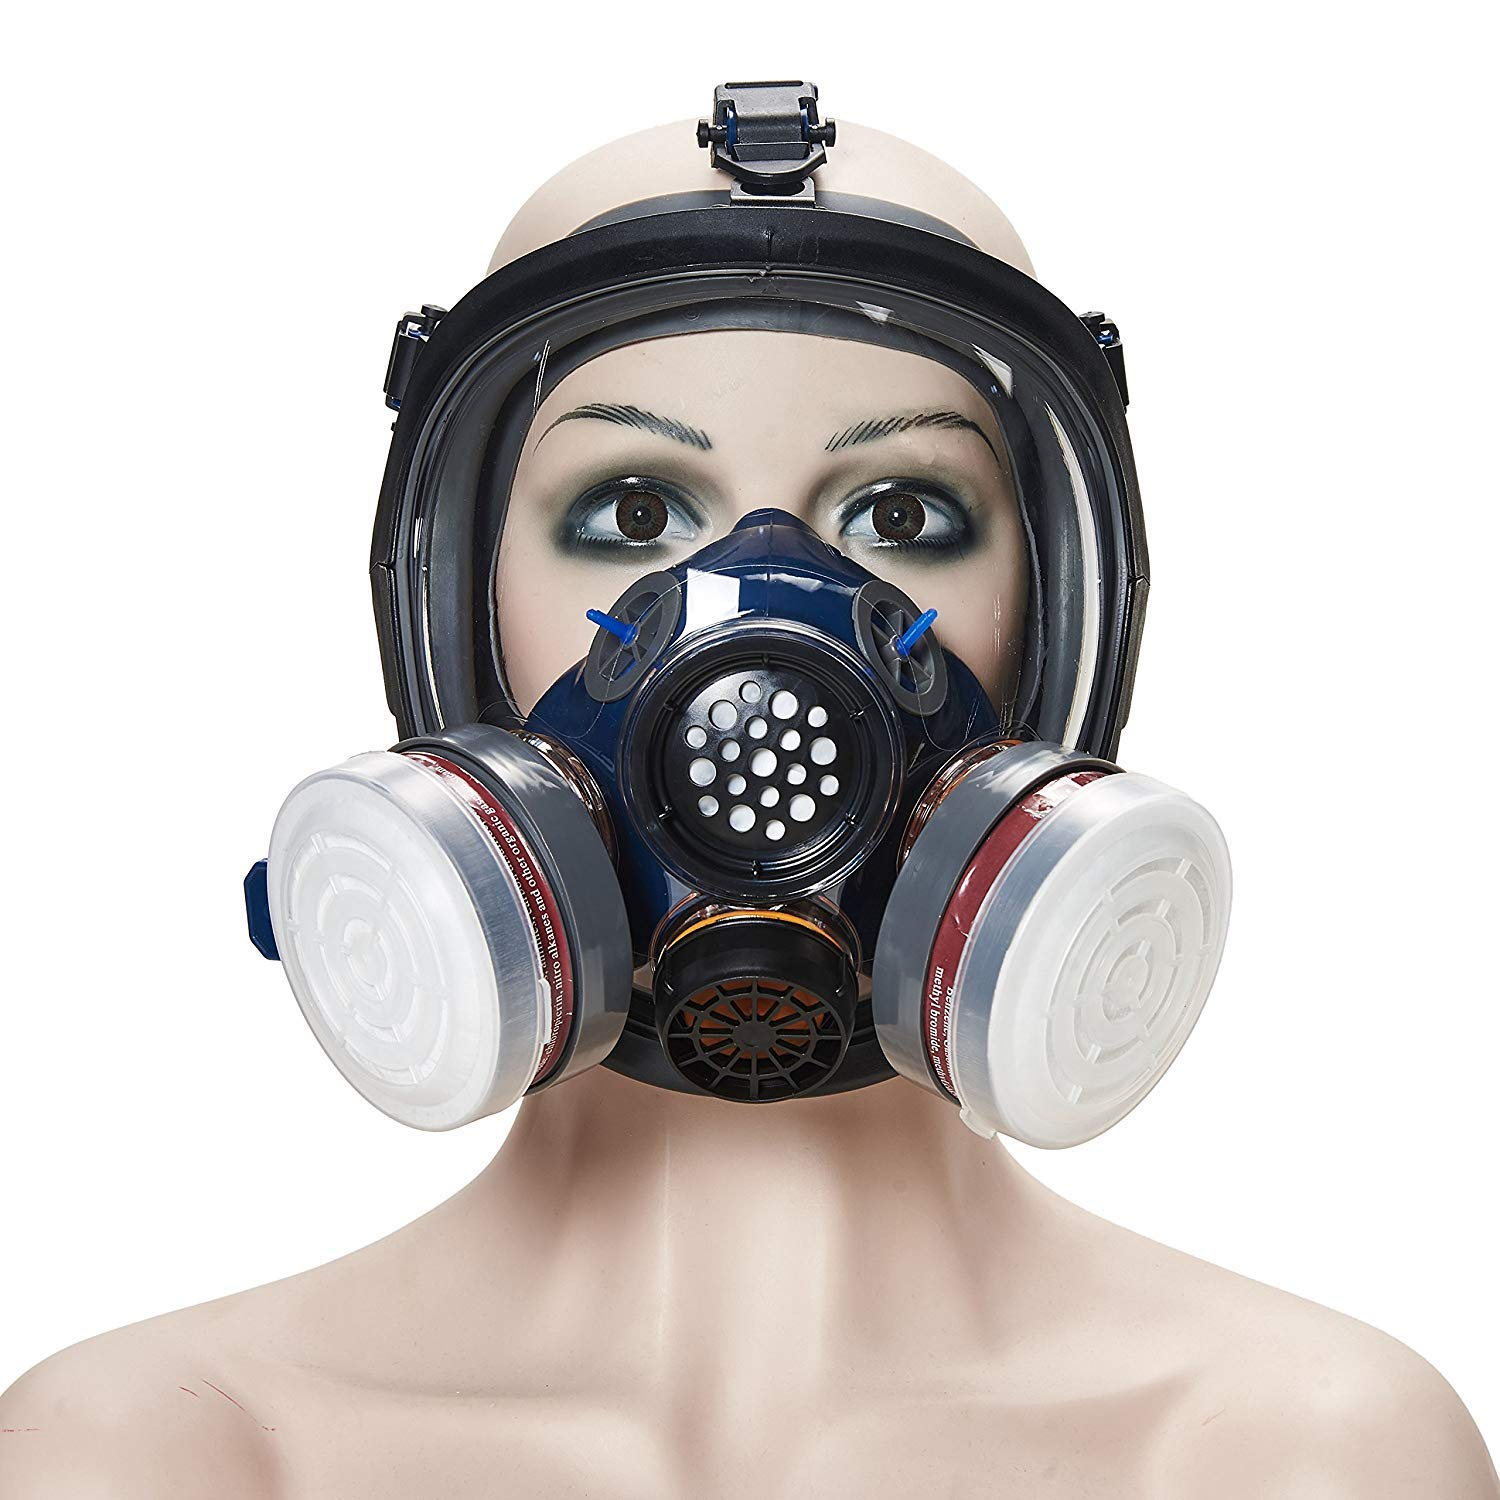 Phoenixfly99 Organic Vapor Full Face Respirator Safety Mask N95 Double Activated Charcoal Air filter For Painting Formaldehyde Chemicals Respiratory Protection (Safety mask+1 Pair 3# filter) by Phoenixfly99 (Image #3)